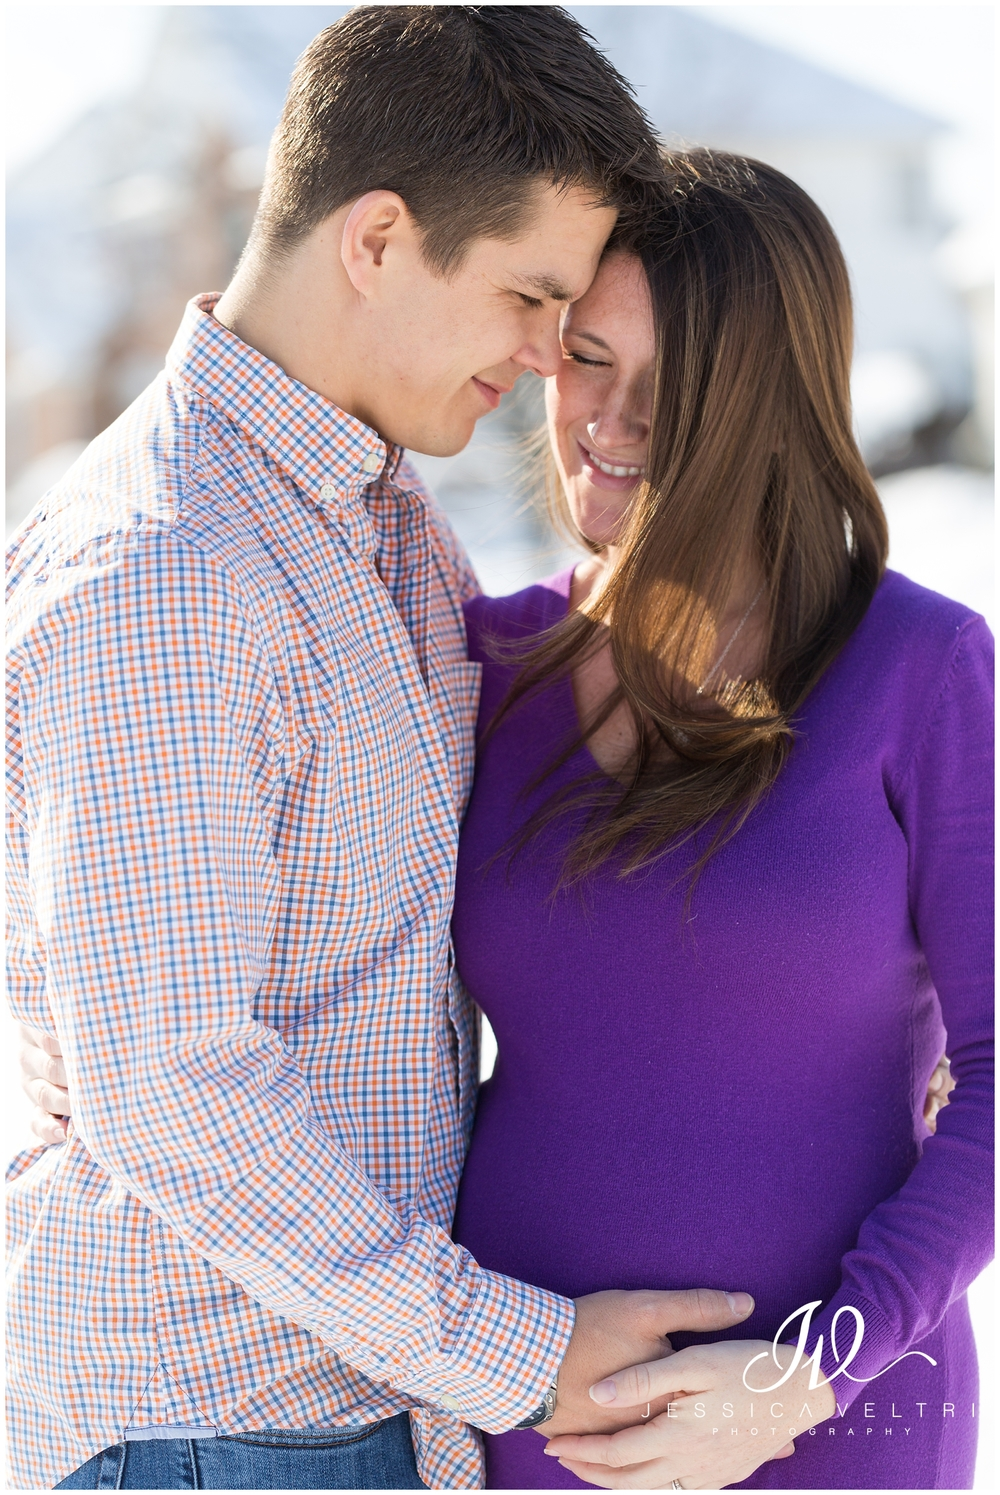 Washington D.C. Wedding Photographer | Jessica Veltri_0197.jpg